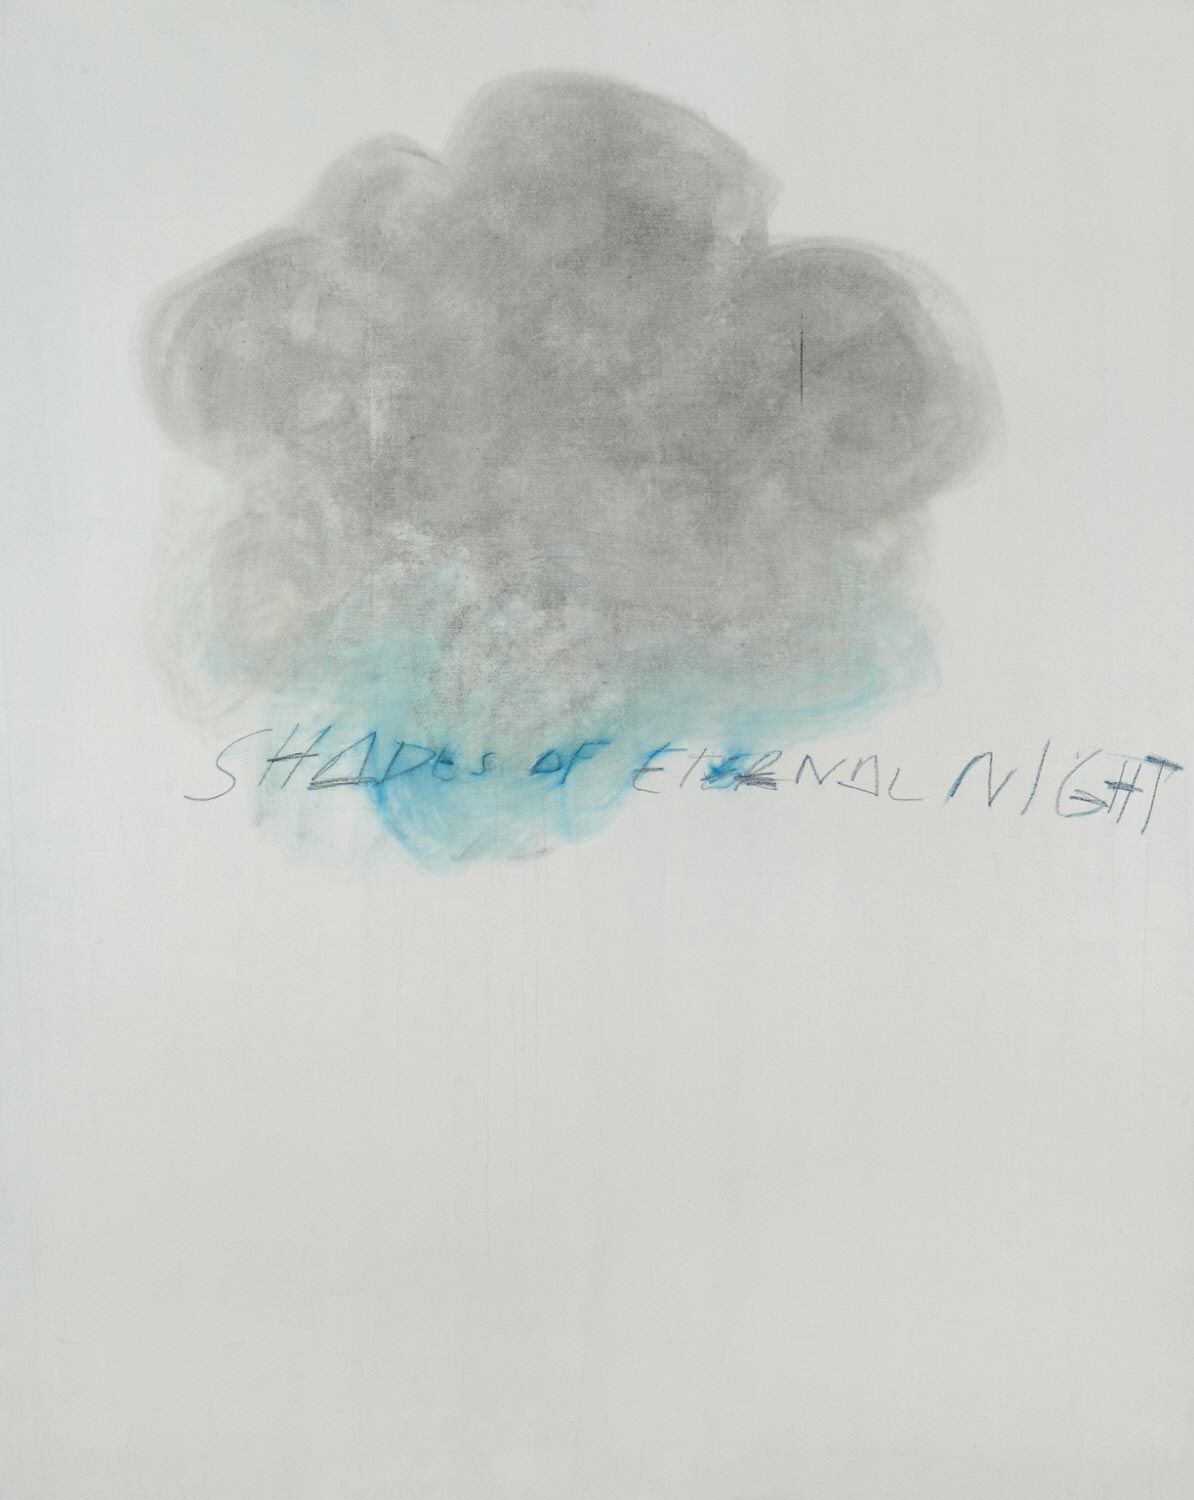 Cy Twombly, Fifty Days at Iliam: Shades of Eternal Night